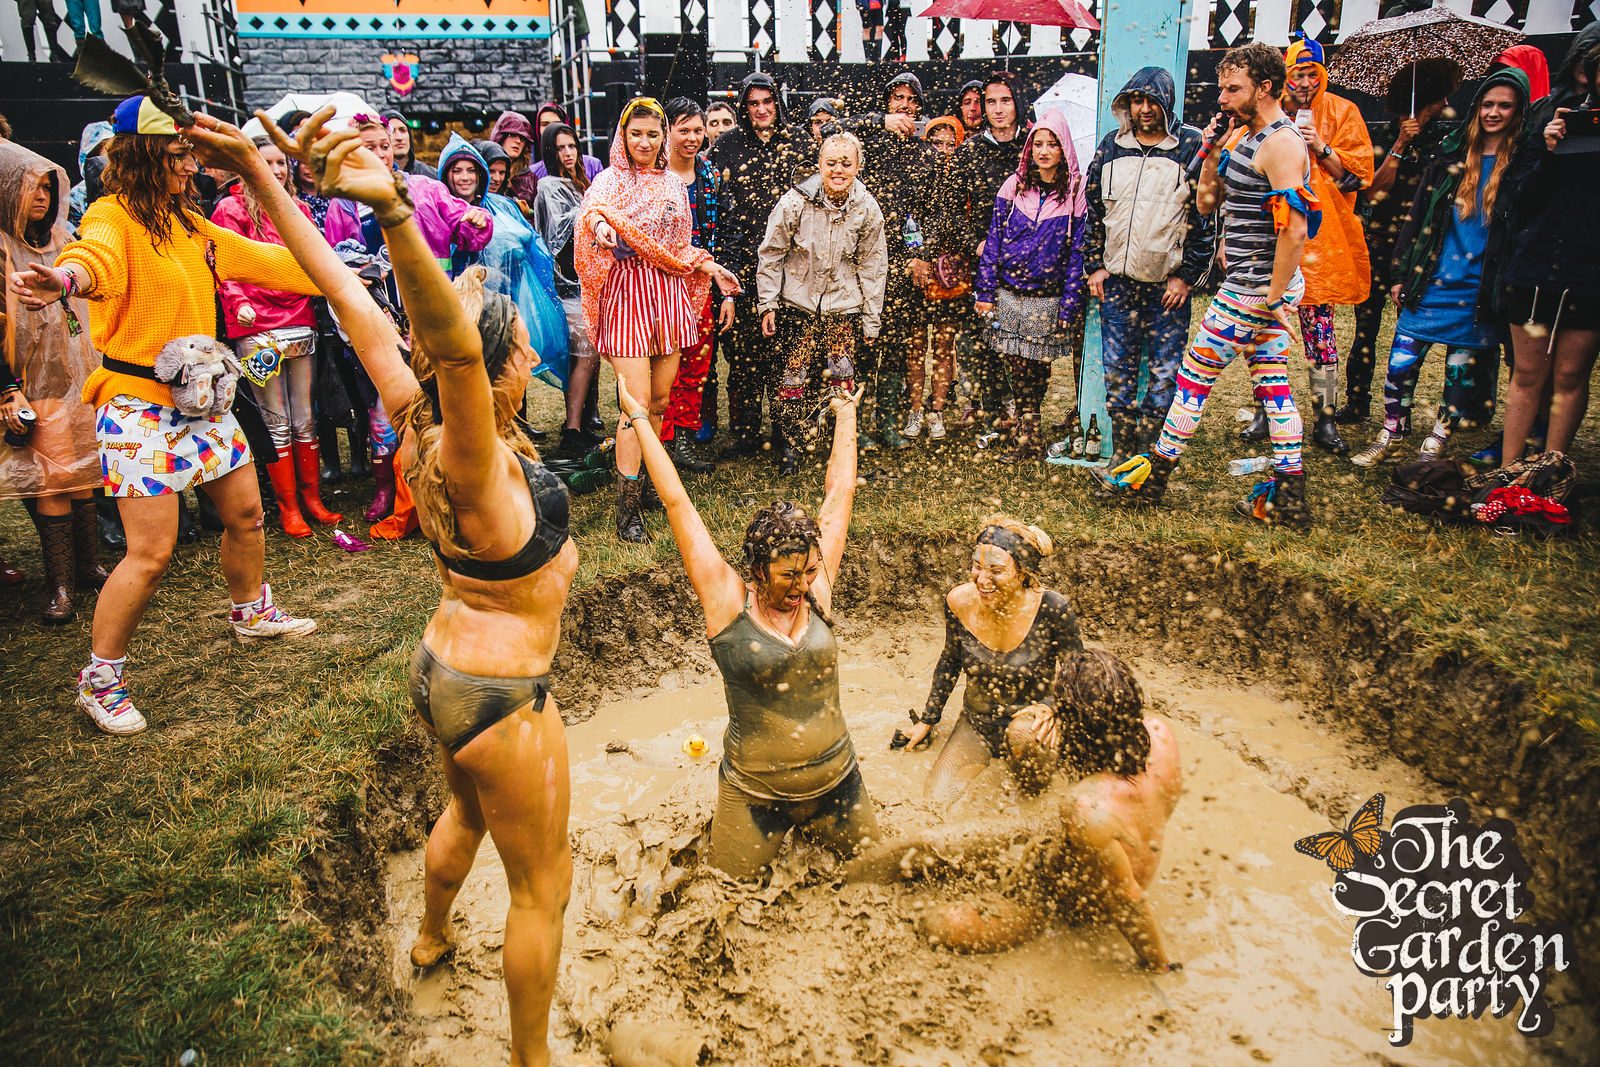 Secret Garden Party | 2015 | Mud Wrestling | Highlights 2015